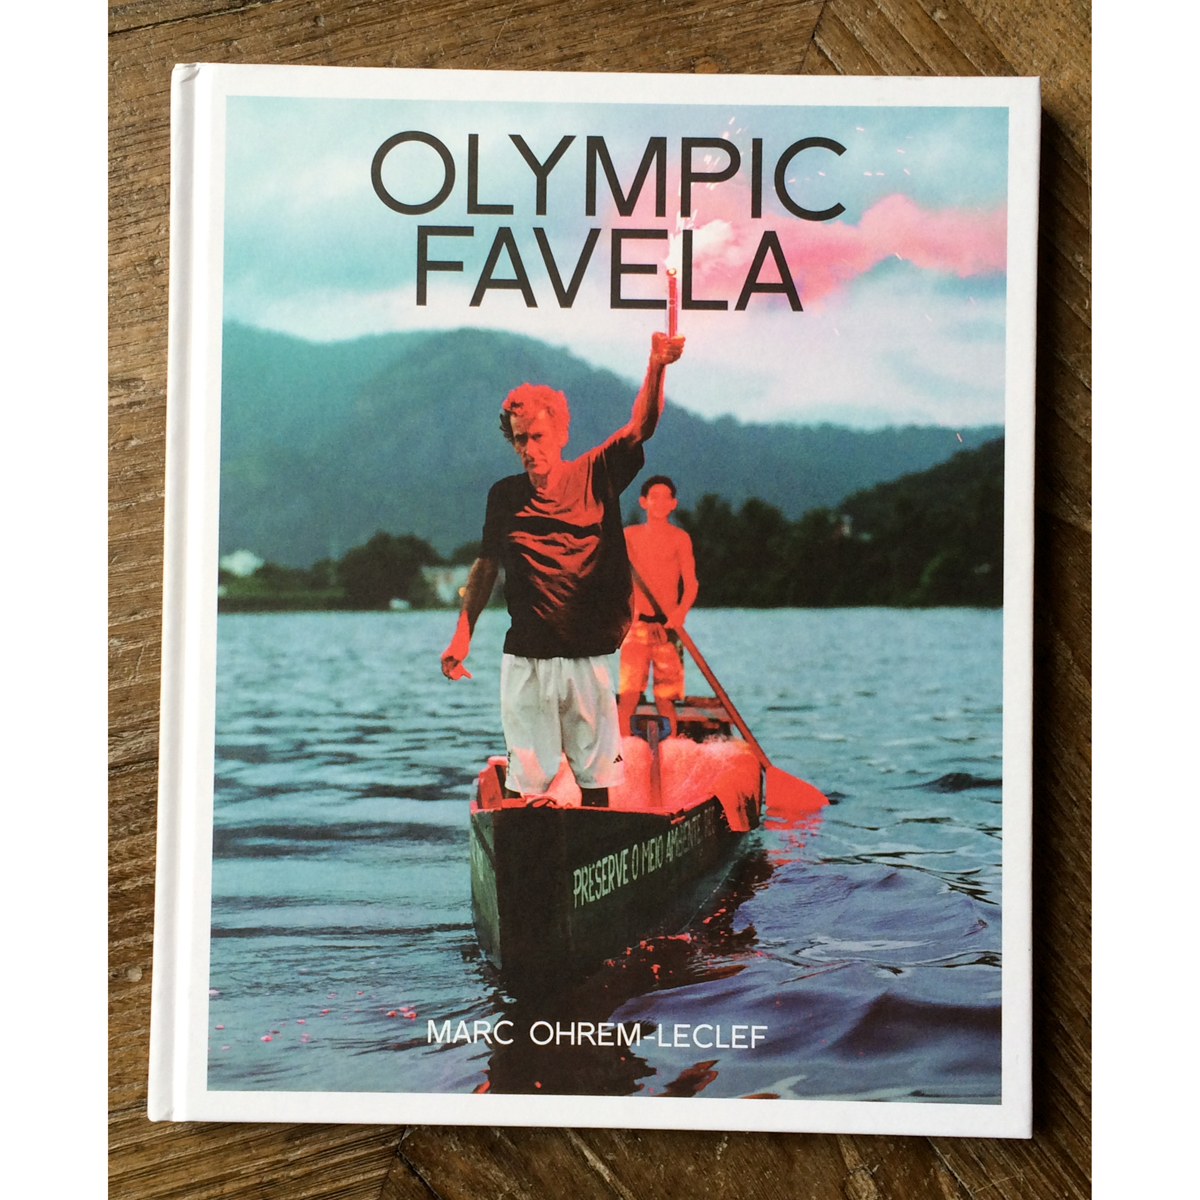 Olympic Favela book cover by Marc Ohrem-Leclef